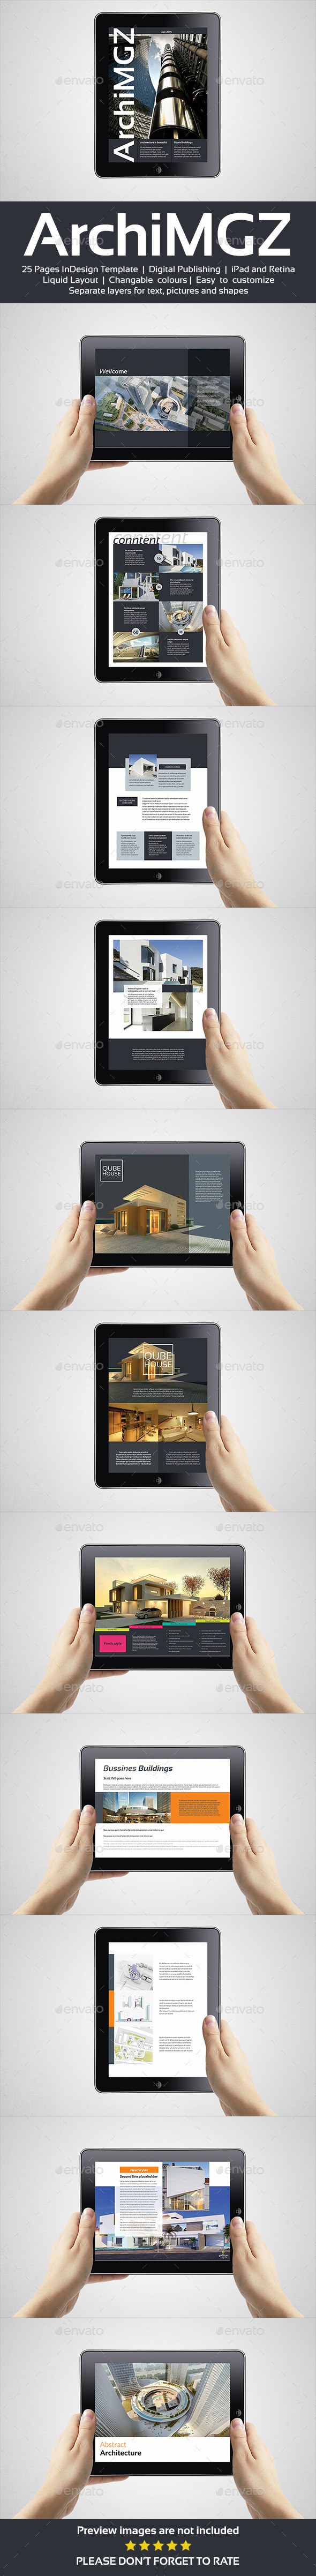 Tablet Architecture Magazine Template - Digital Magazines ePublishing